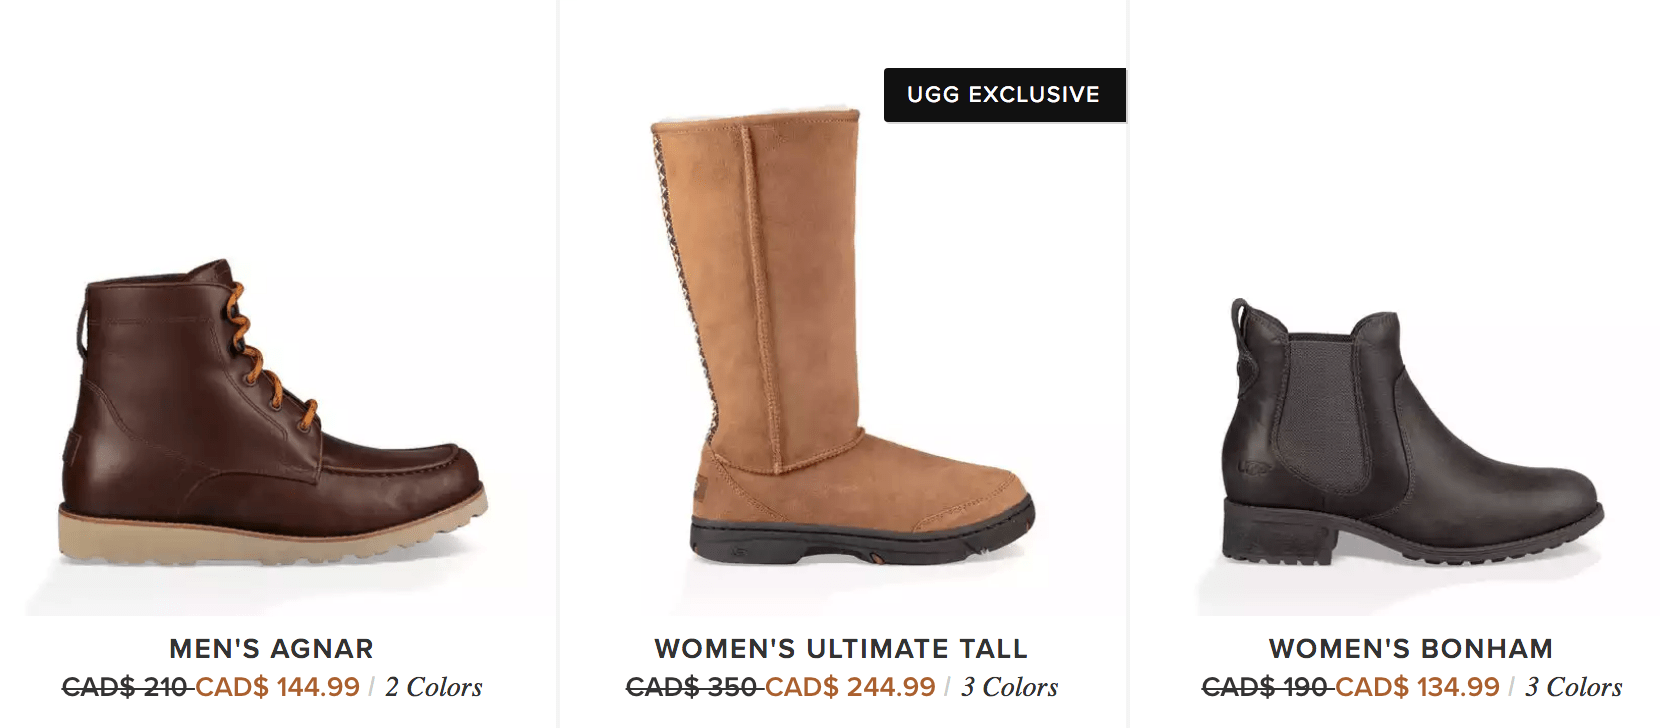 This is a great chance to shop the sale section at UGG where you can save on a wide variety of boots, shoes and sandals for the whole family.